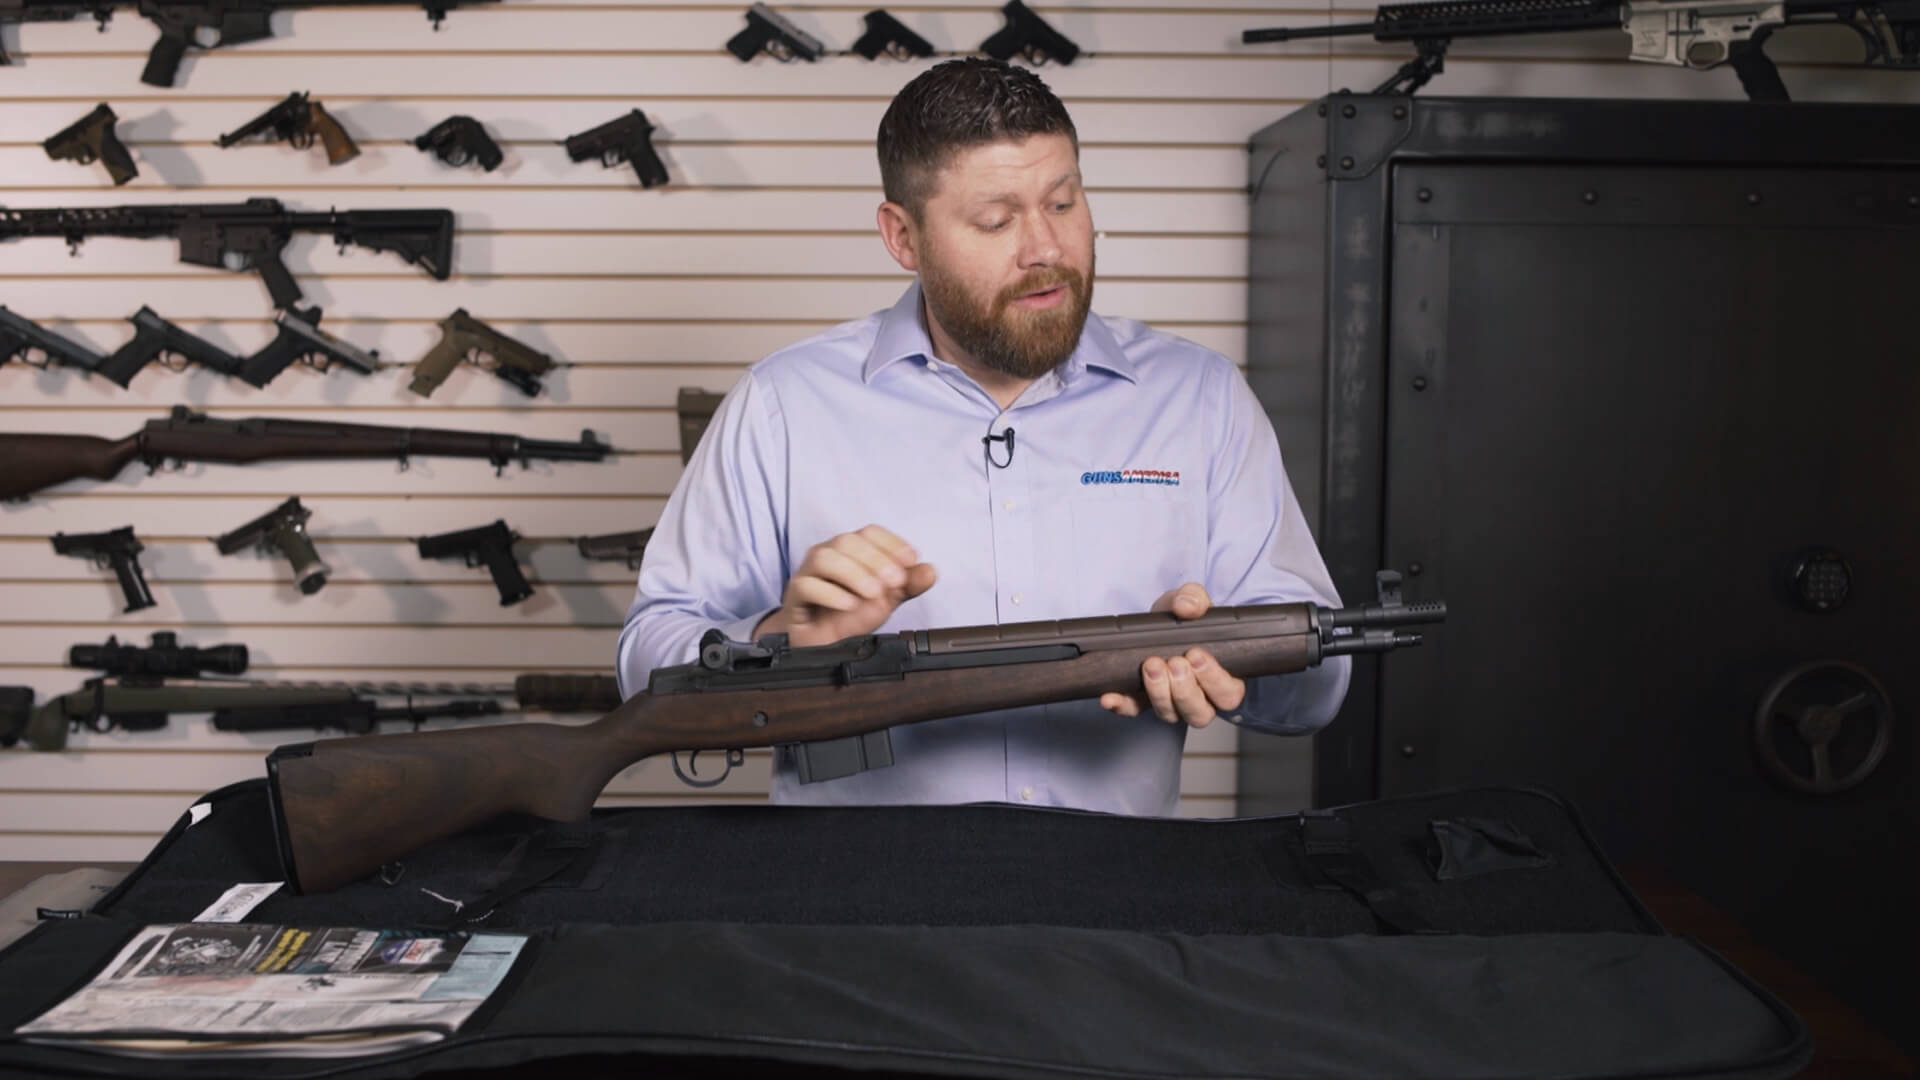 Springfield Armory M1A Tanker Unboxed at the Gun Counter